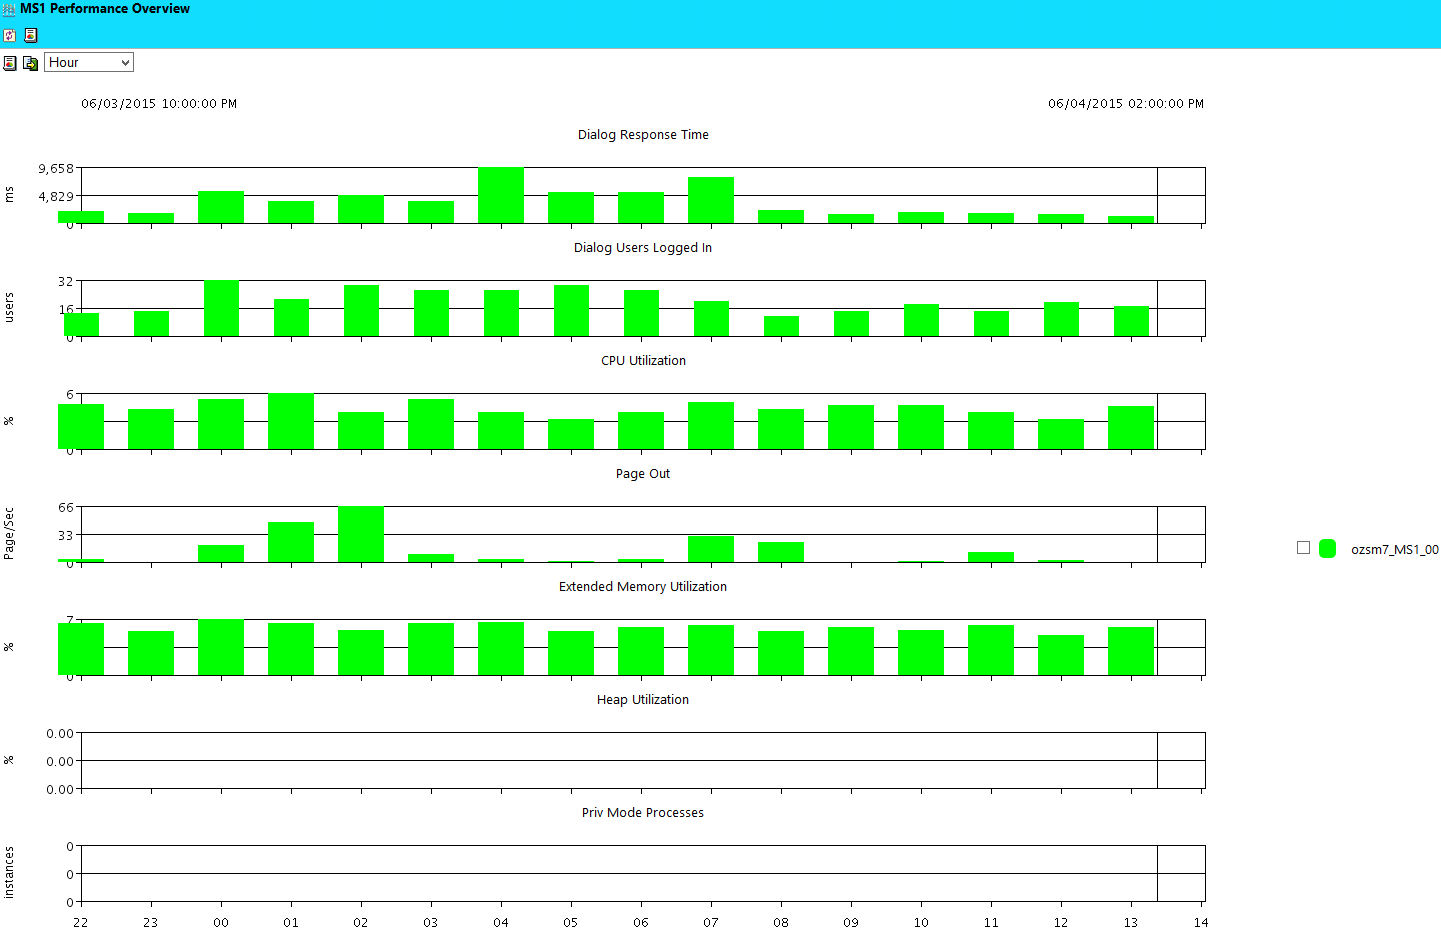 ITC_PerformanceOverview_Chart